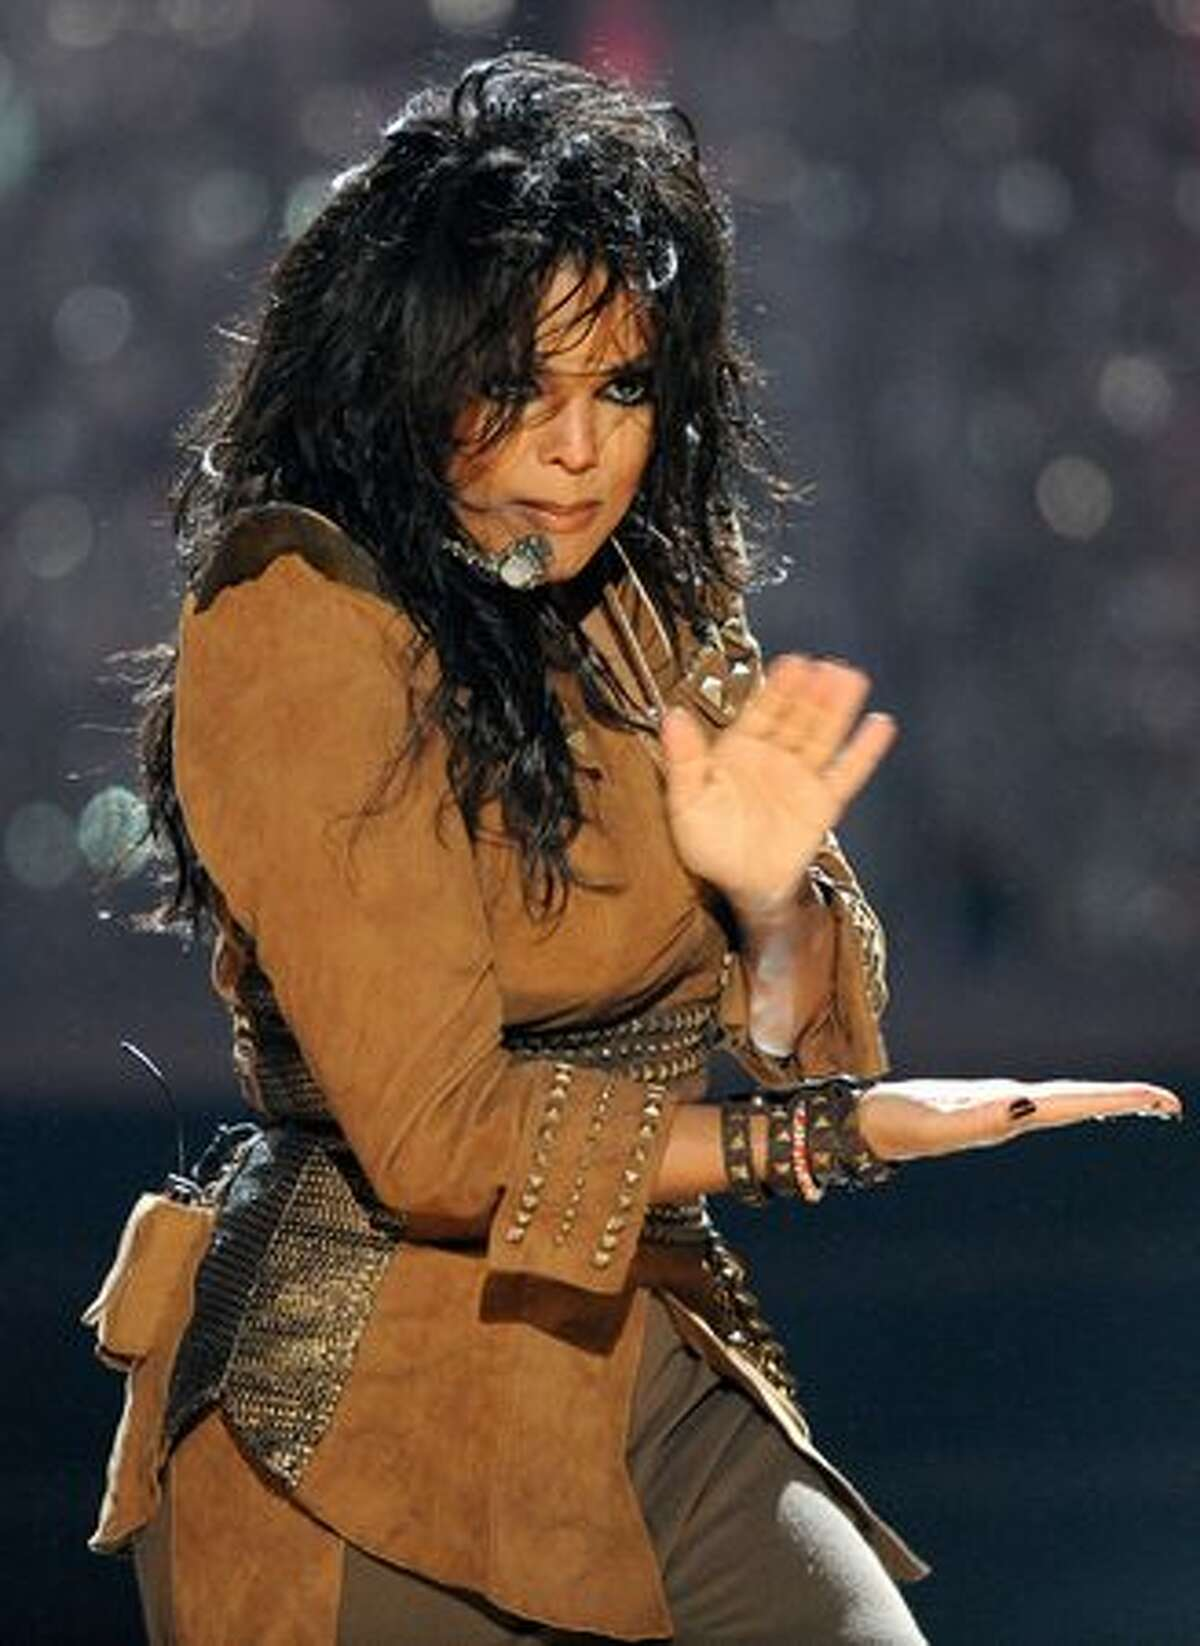 Singer Janet Jackson performs onstage.